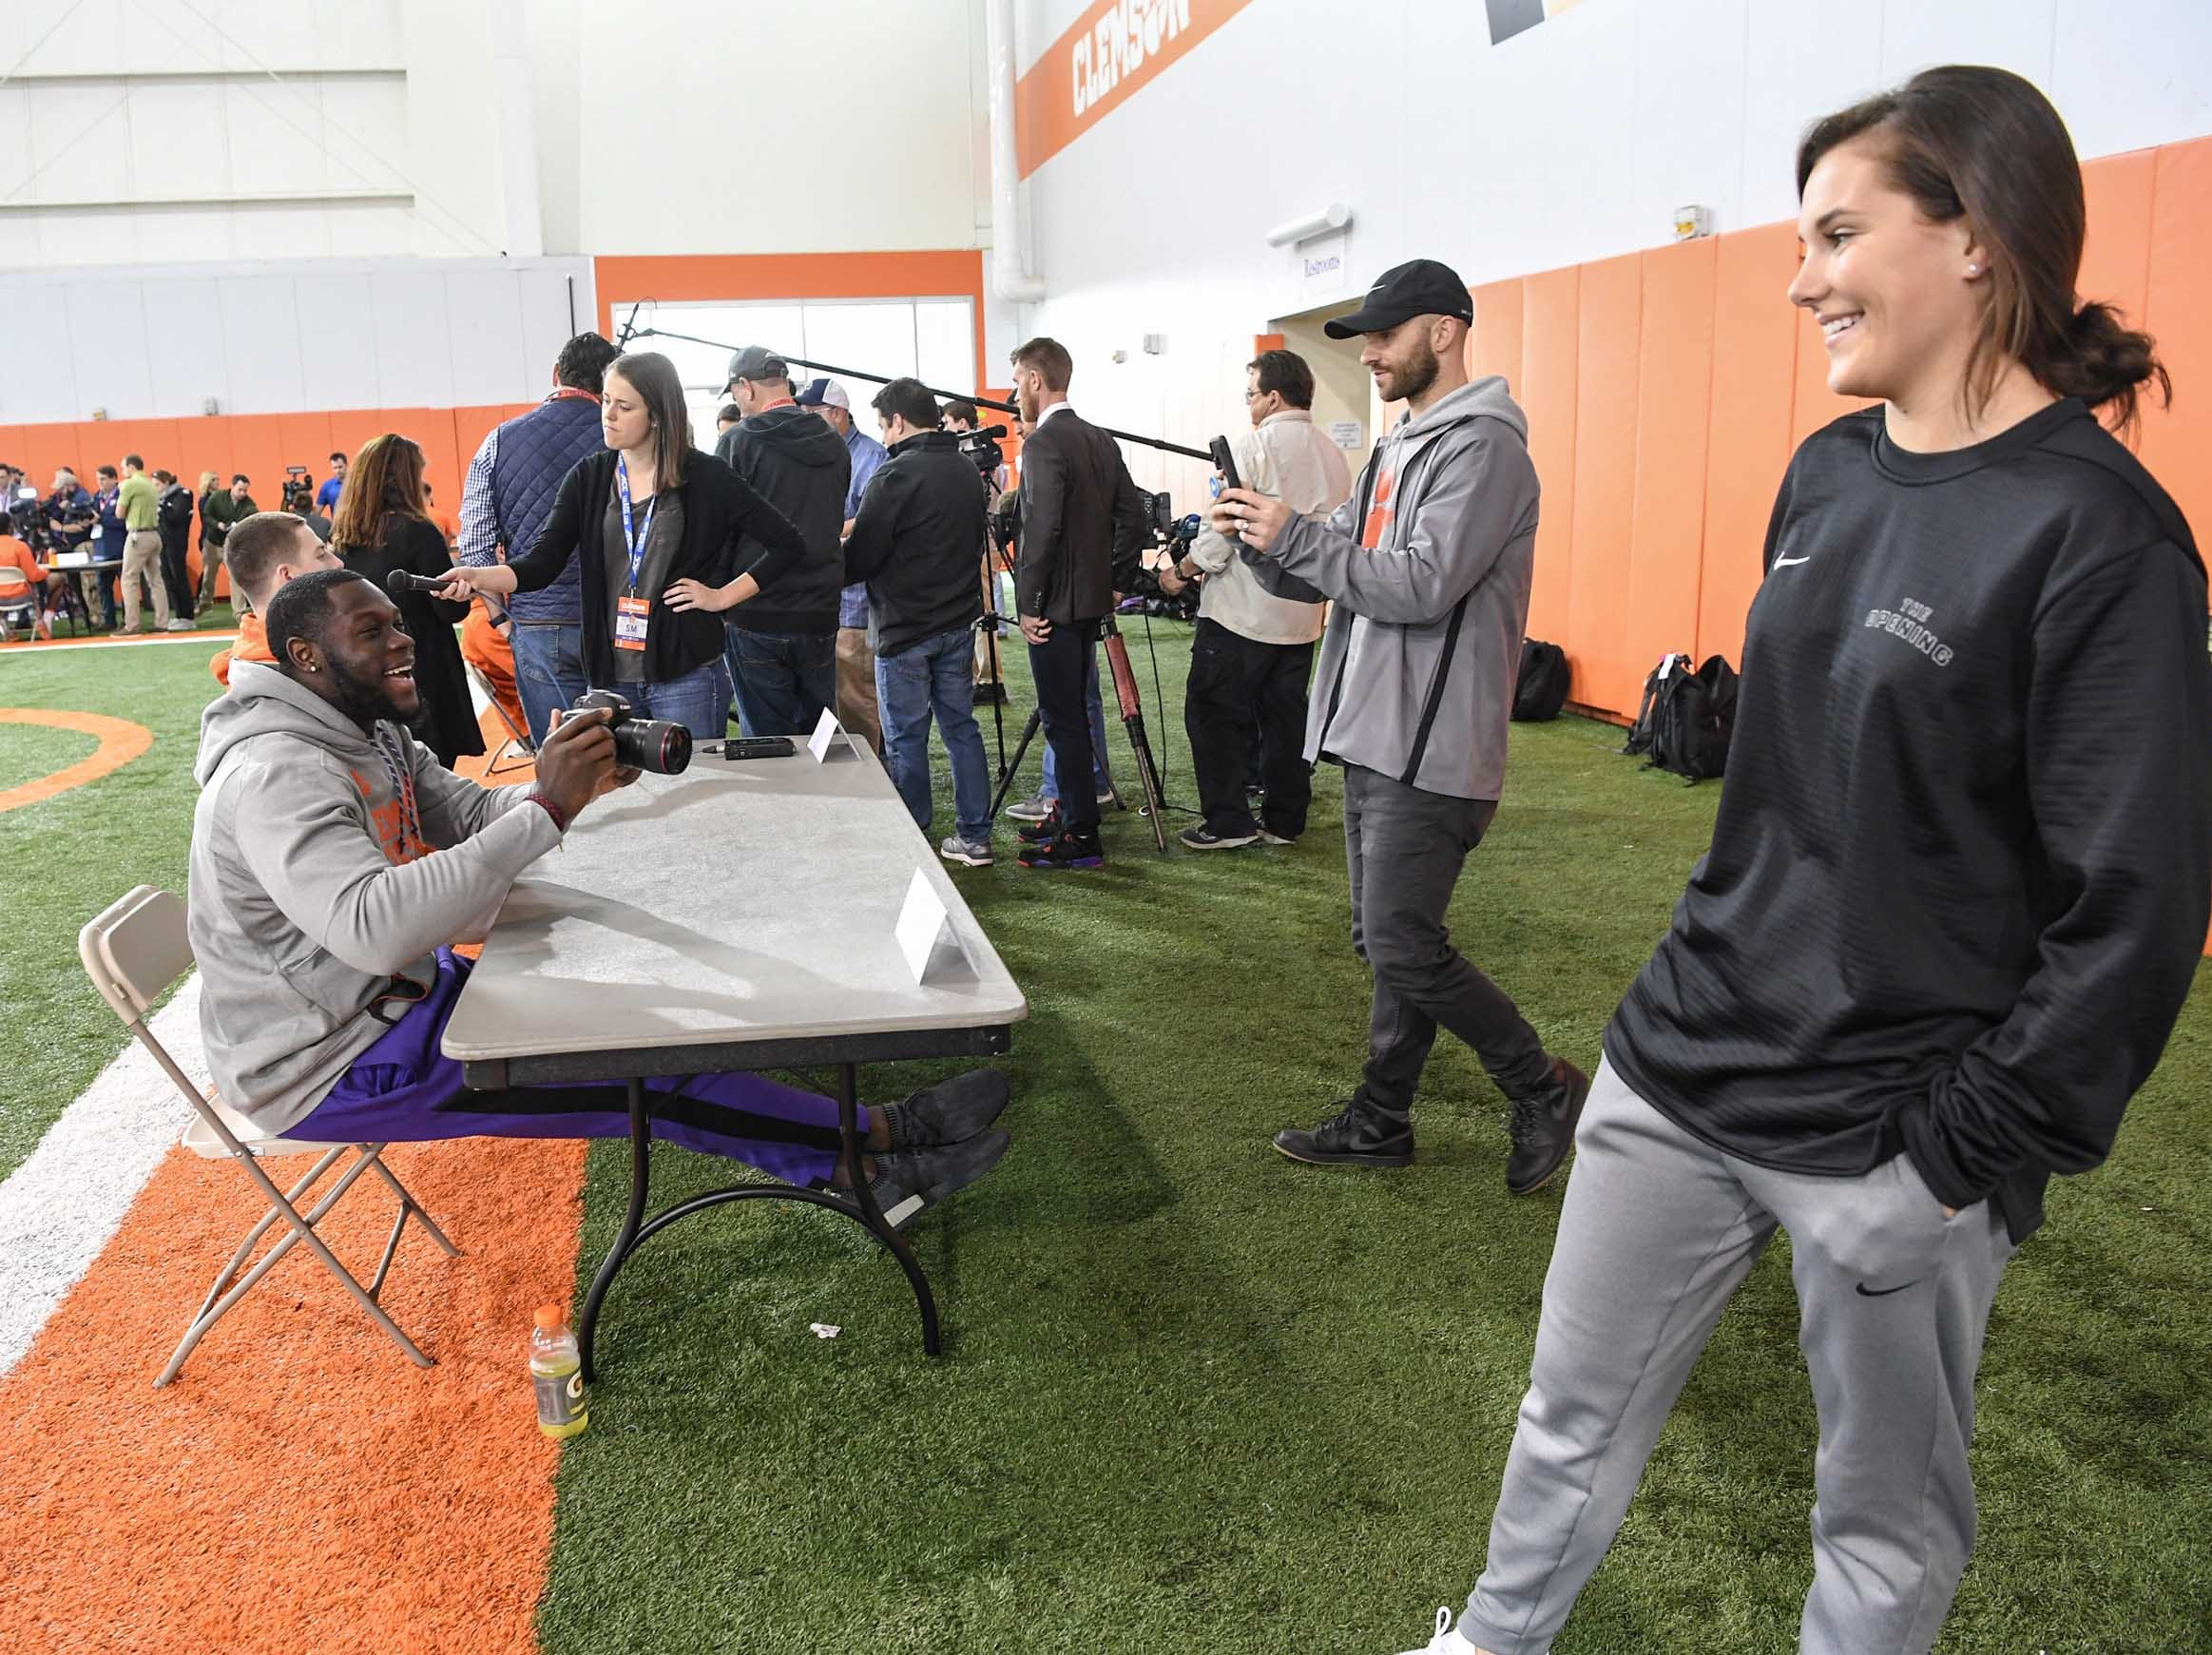 Clemson tight end Milan Richard takes a moment to get a photo of reporter Maddie Williams, right, with her camera a student at Clemson, during media day in the Poe Indoor Facility in Clemson Wednesday, January 2, 2019.